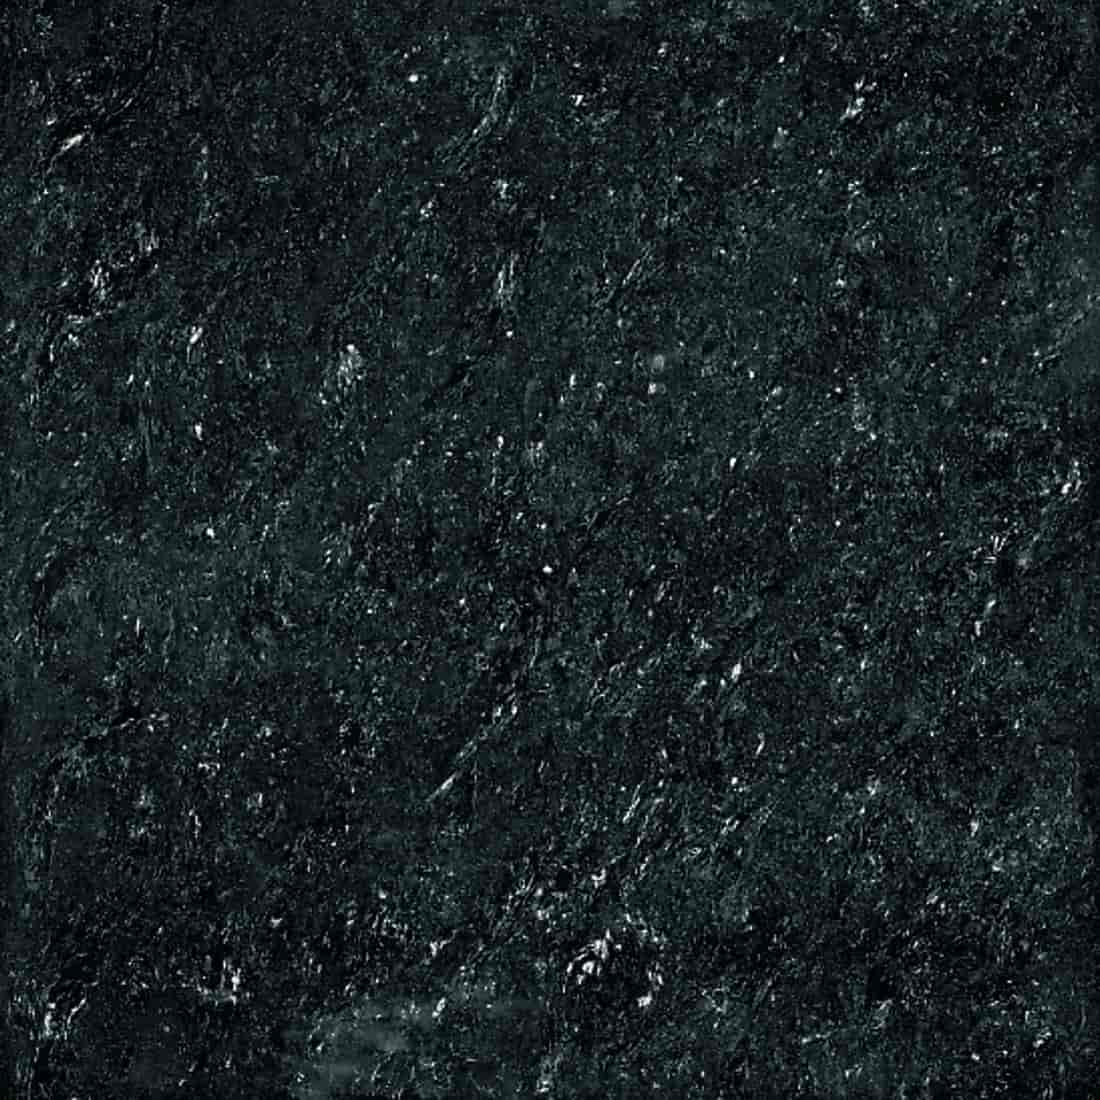 Buy johnson cosmic nero 80 x 80 cm vitrified floor tile black johnson cosmic nero 80 x 80 cm vitrified floor tile black hrj2832146 doublecrazyfo Image collections